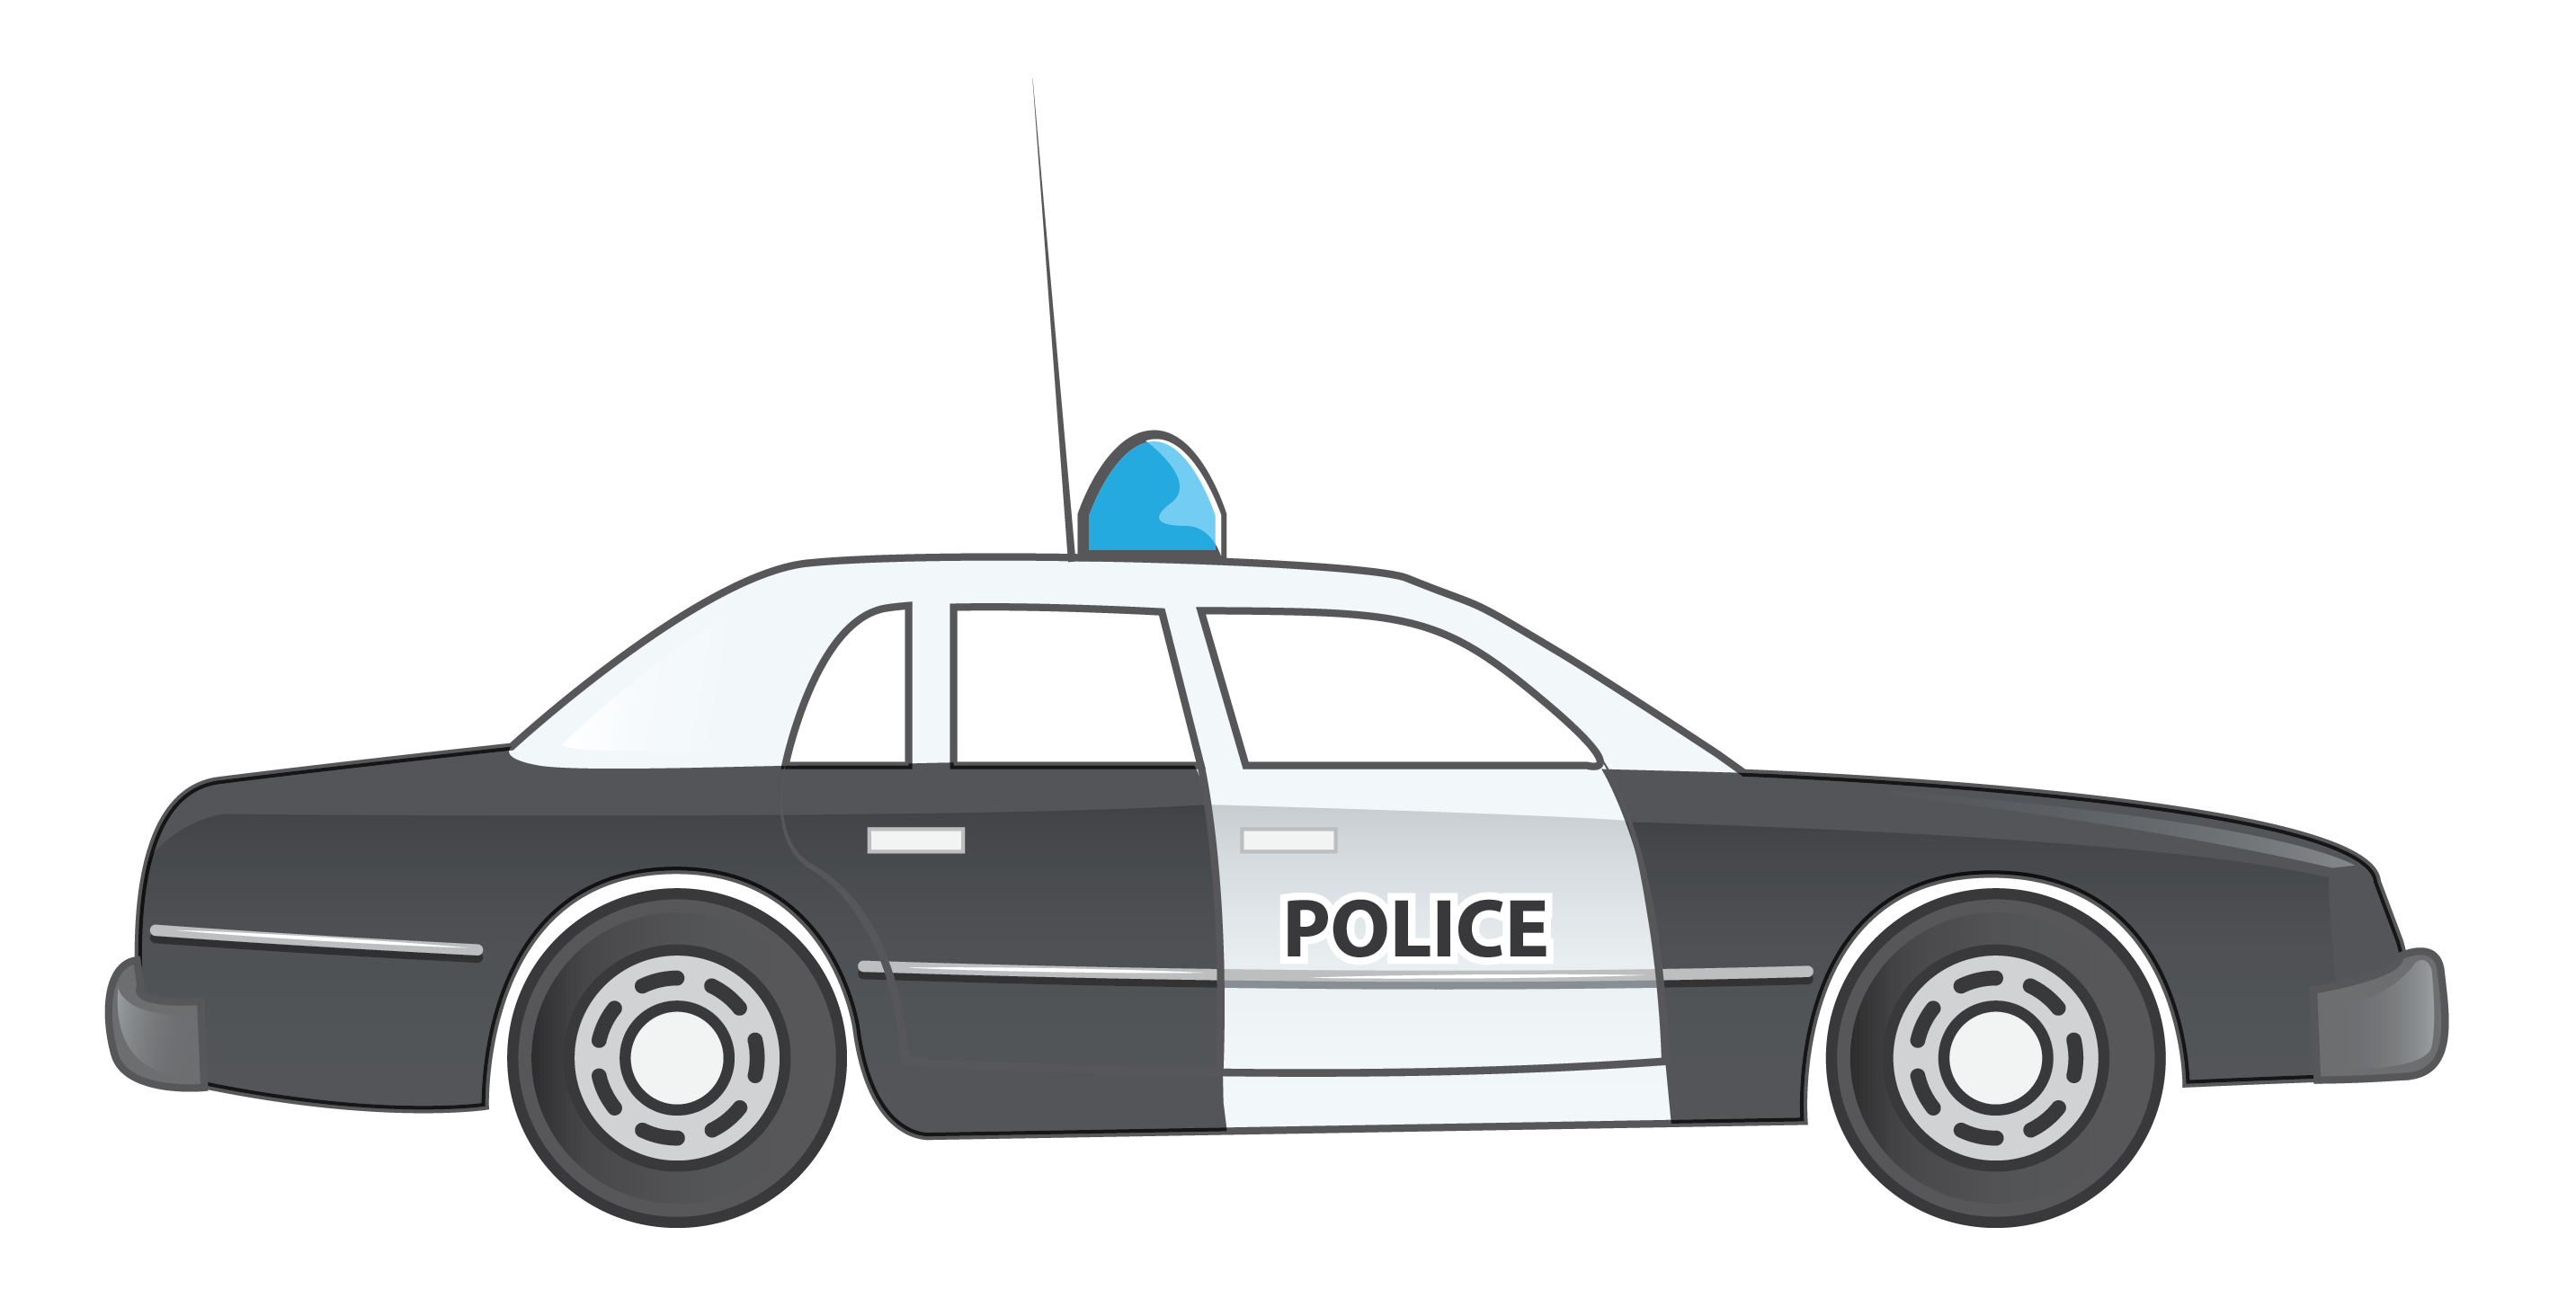 Blue Car clipart side view png Art Police Clip Car For